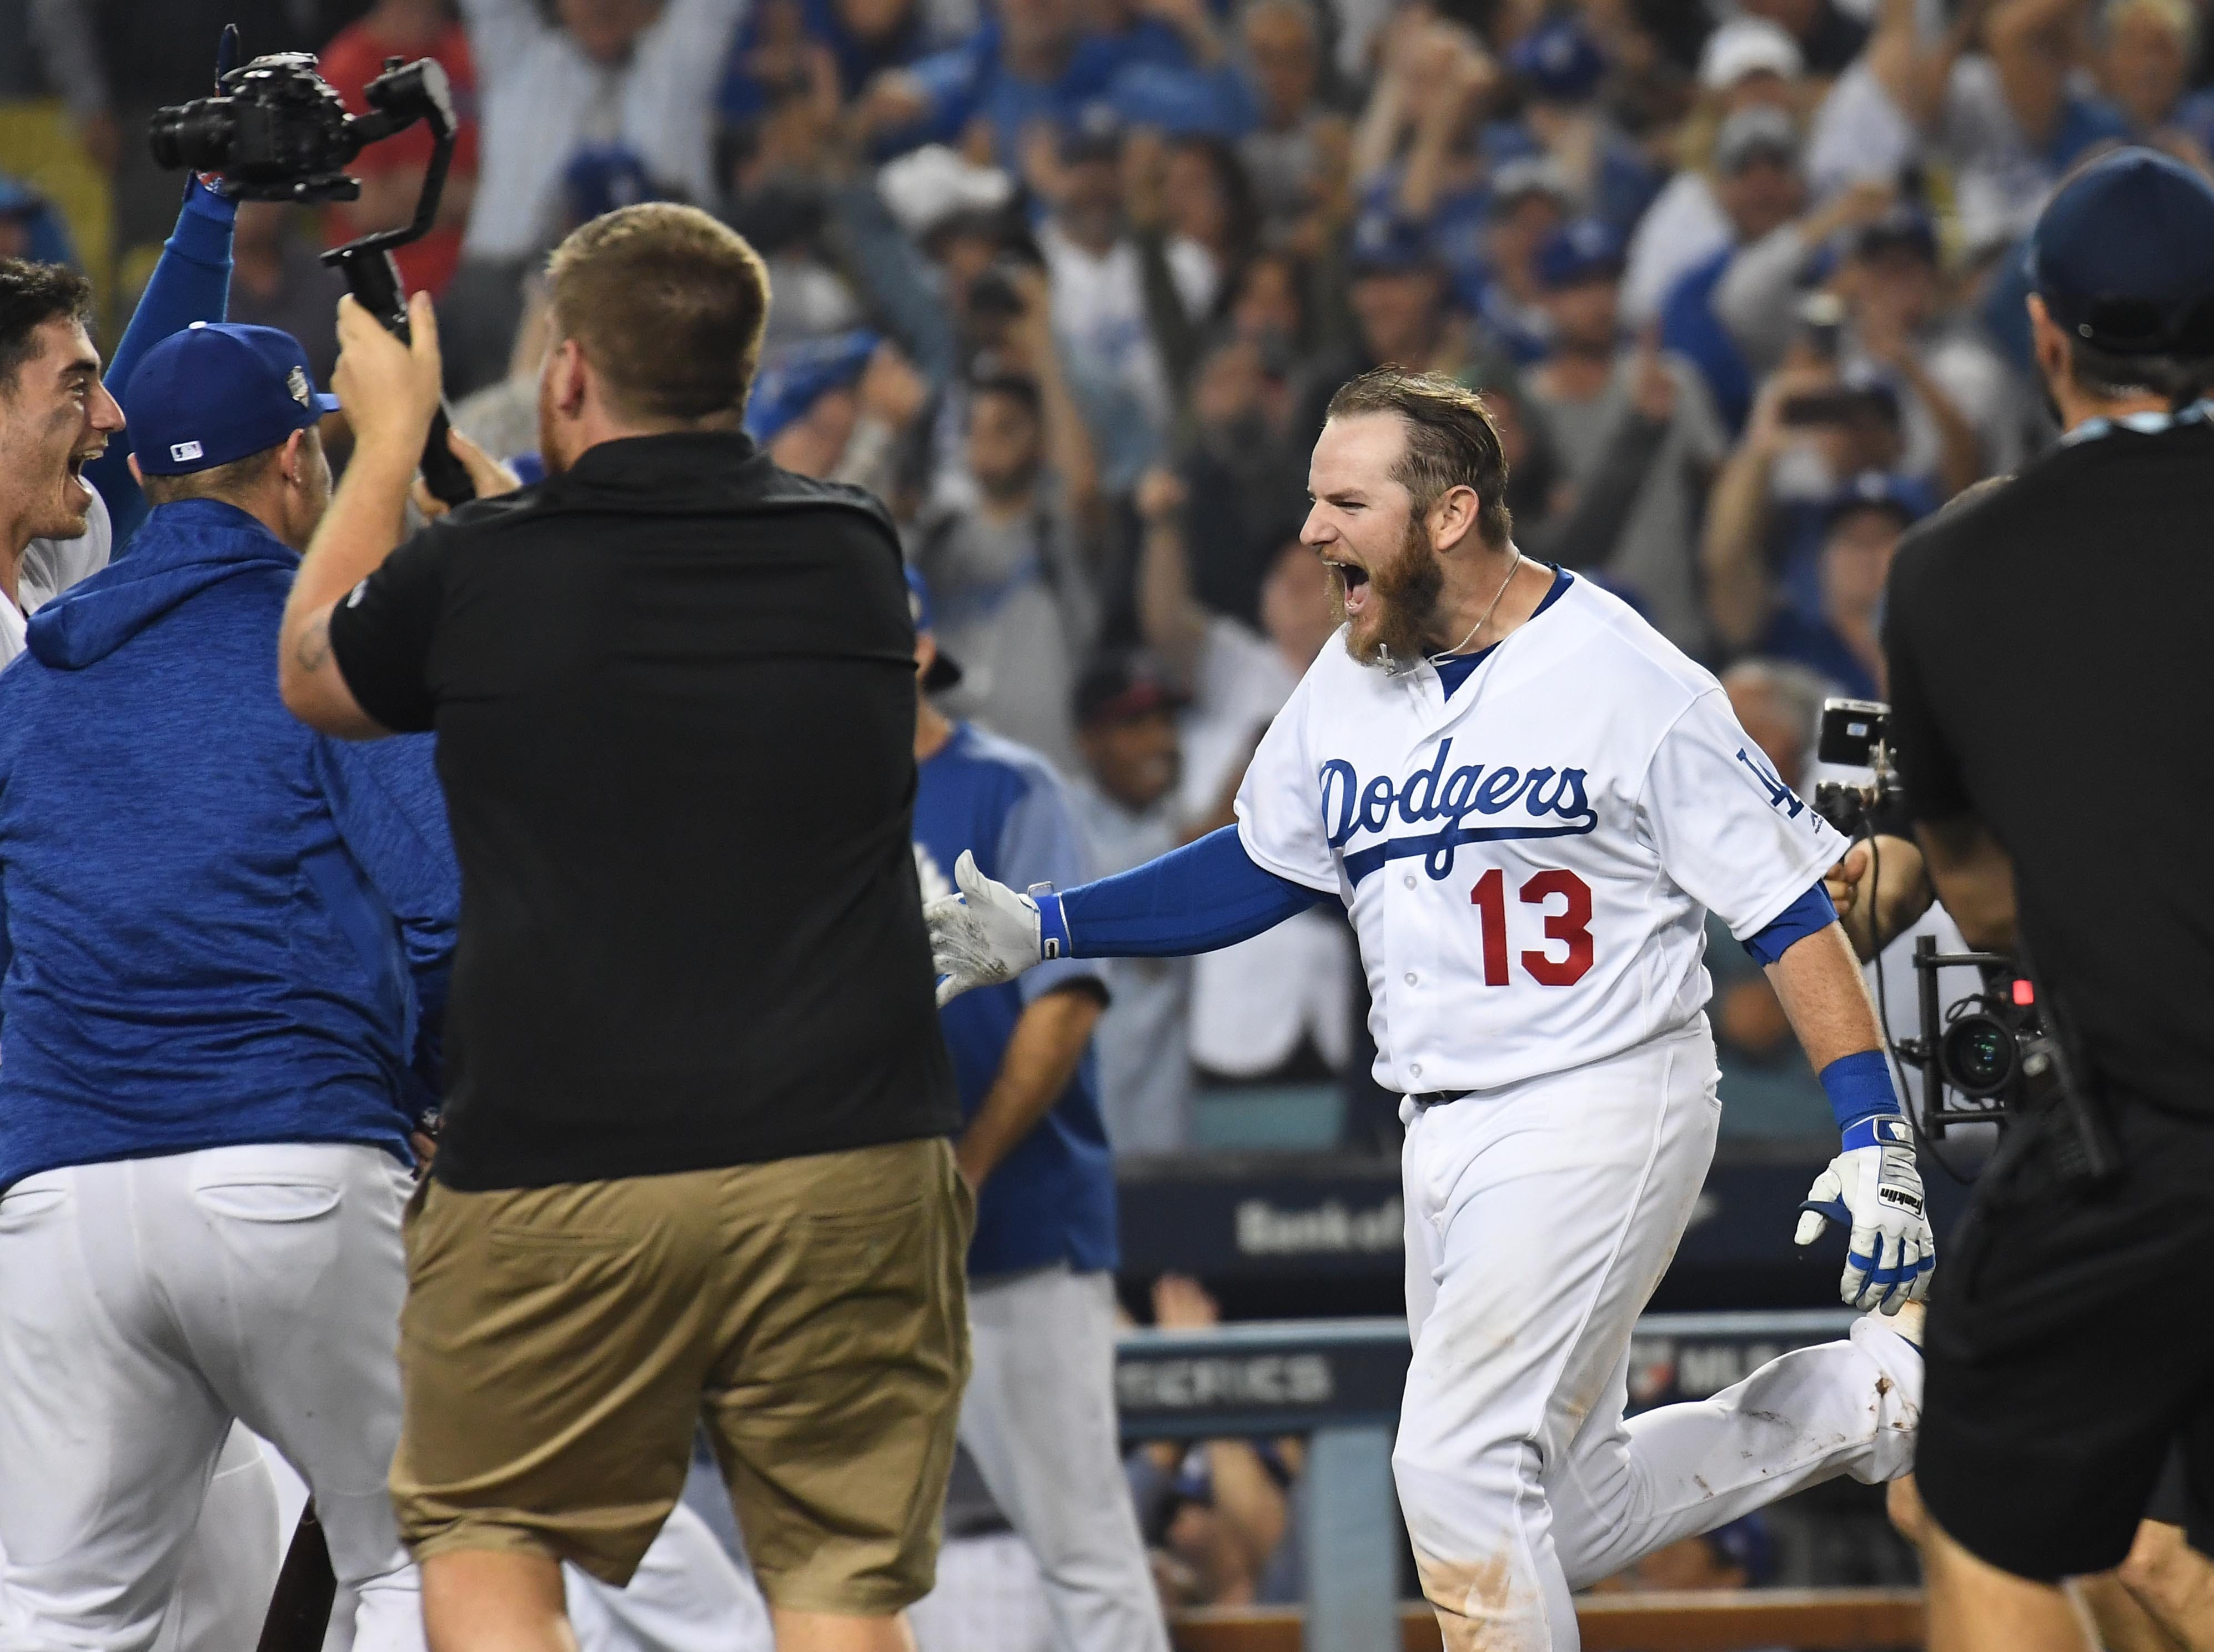 Game 3 at Dodger Stadium: Max Muncy celebrates his walk-off homer in the 18th.